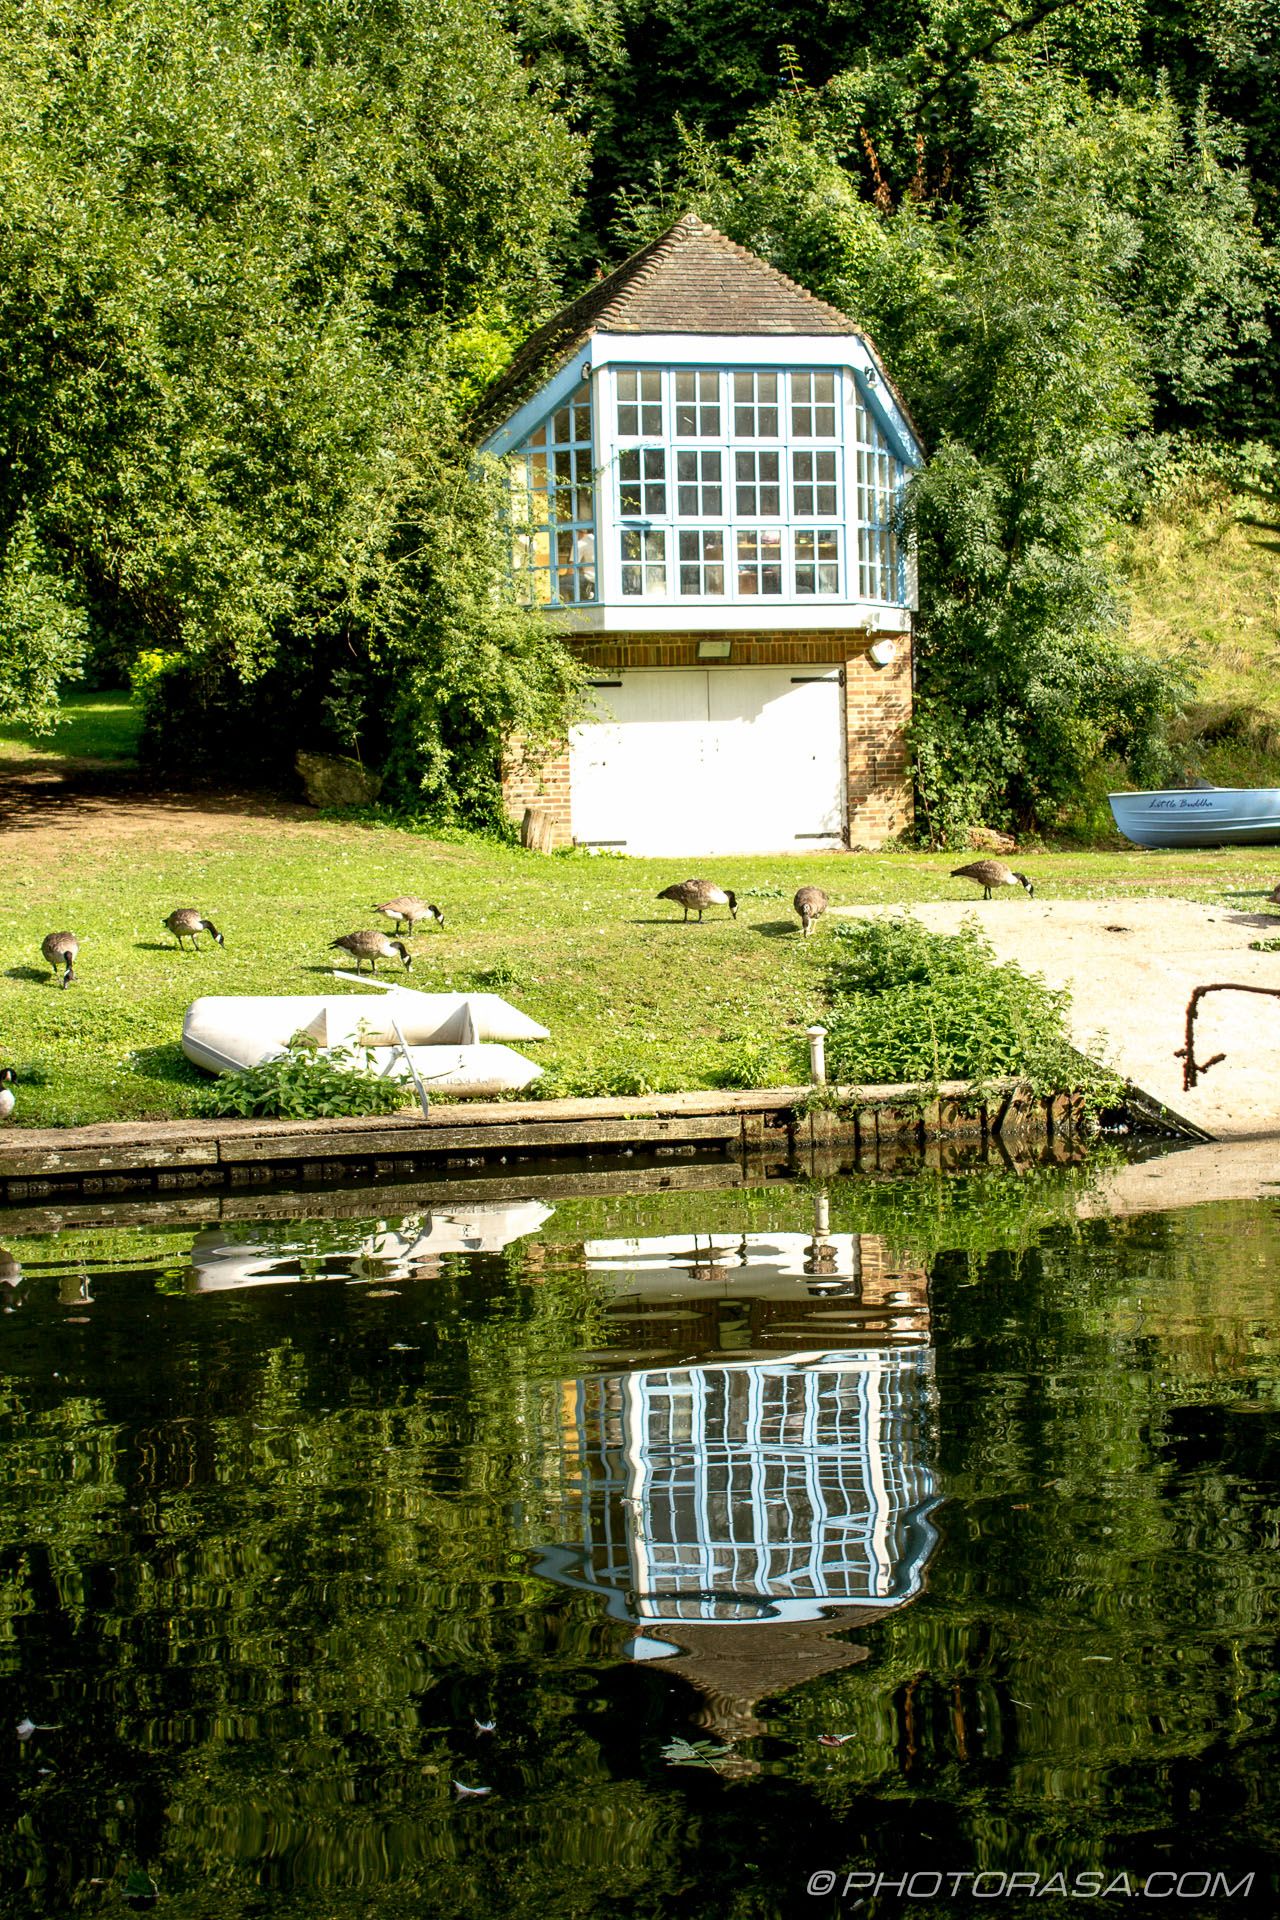 http://photorasa.com/places/maidstone/attachment/boat-house-reflection/